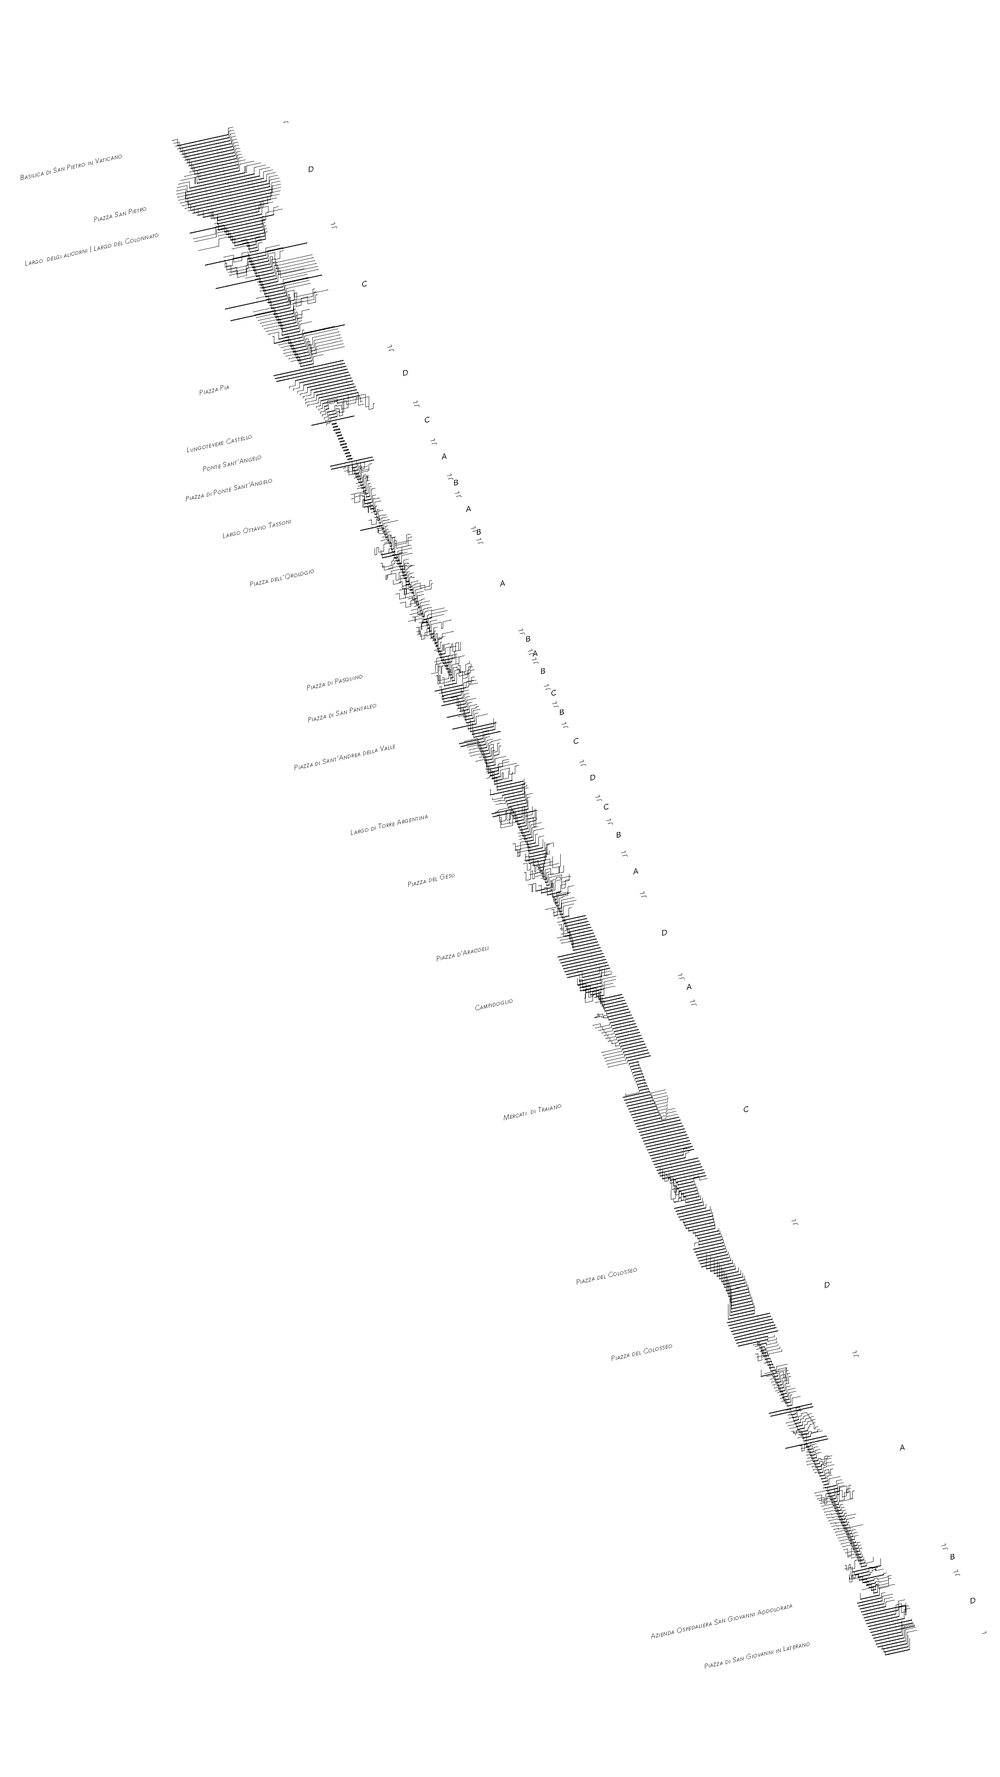 Via Papalis, with a cross-section taken at every ten meters and straightened to better understand the spatial qualities of this route through the Christian capital of the world.